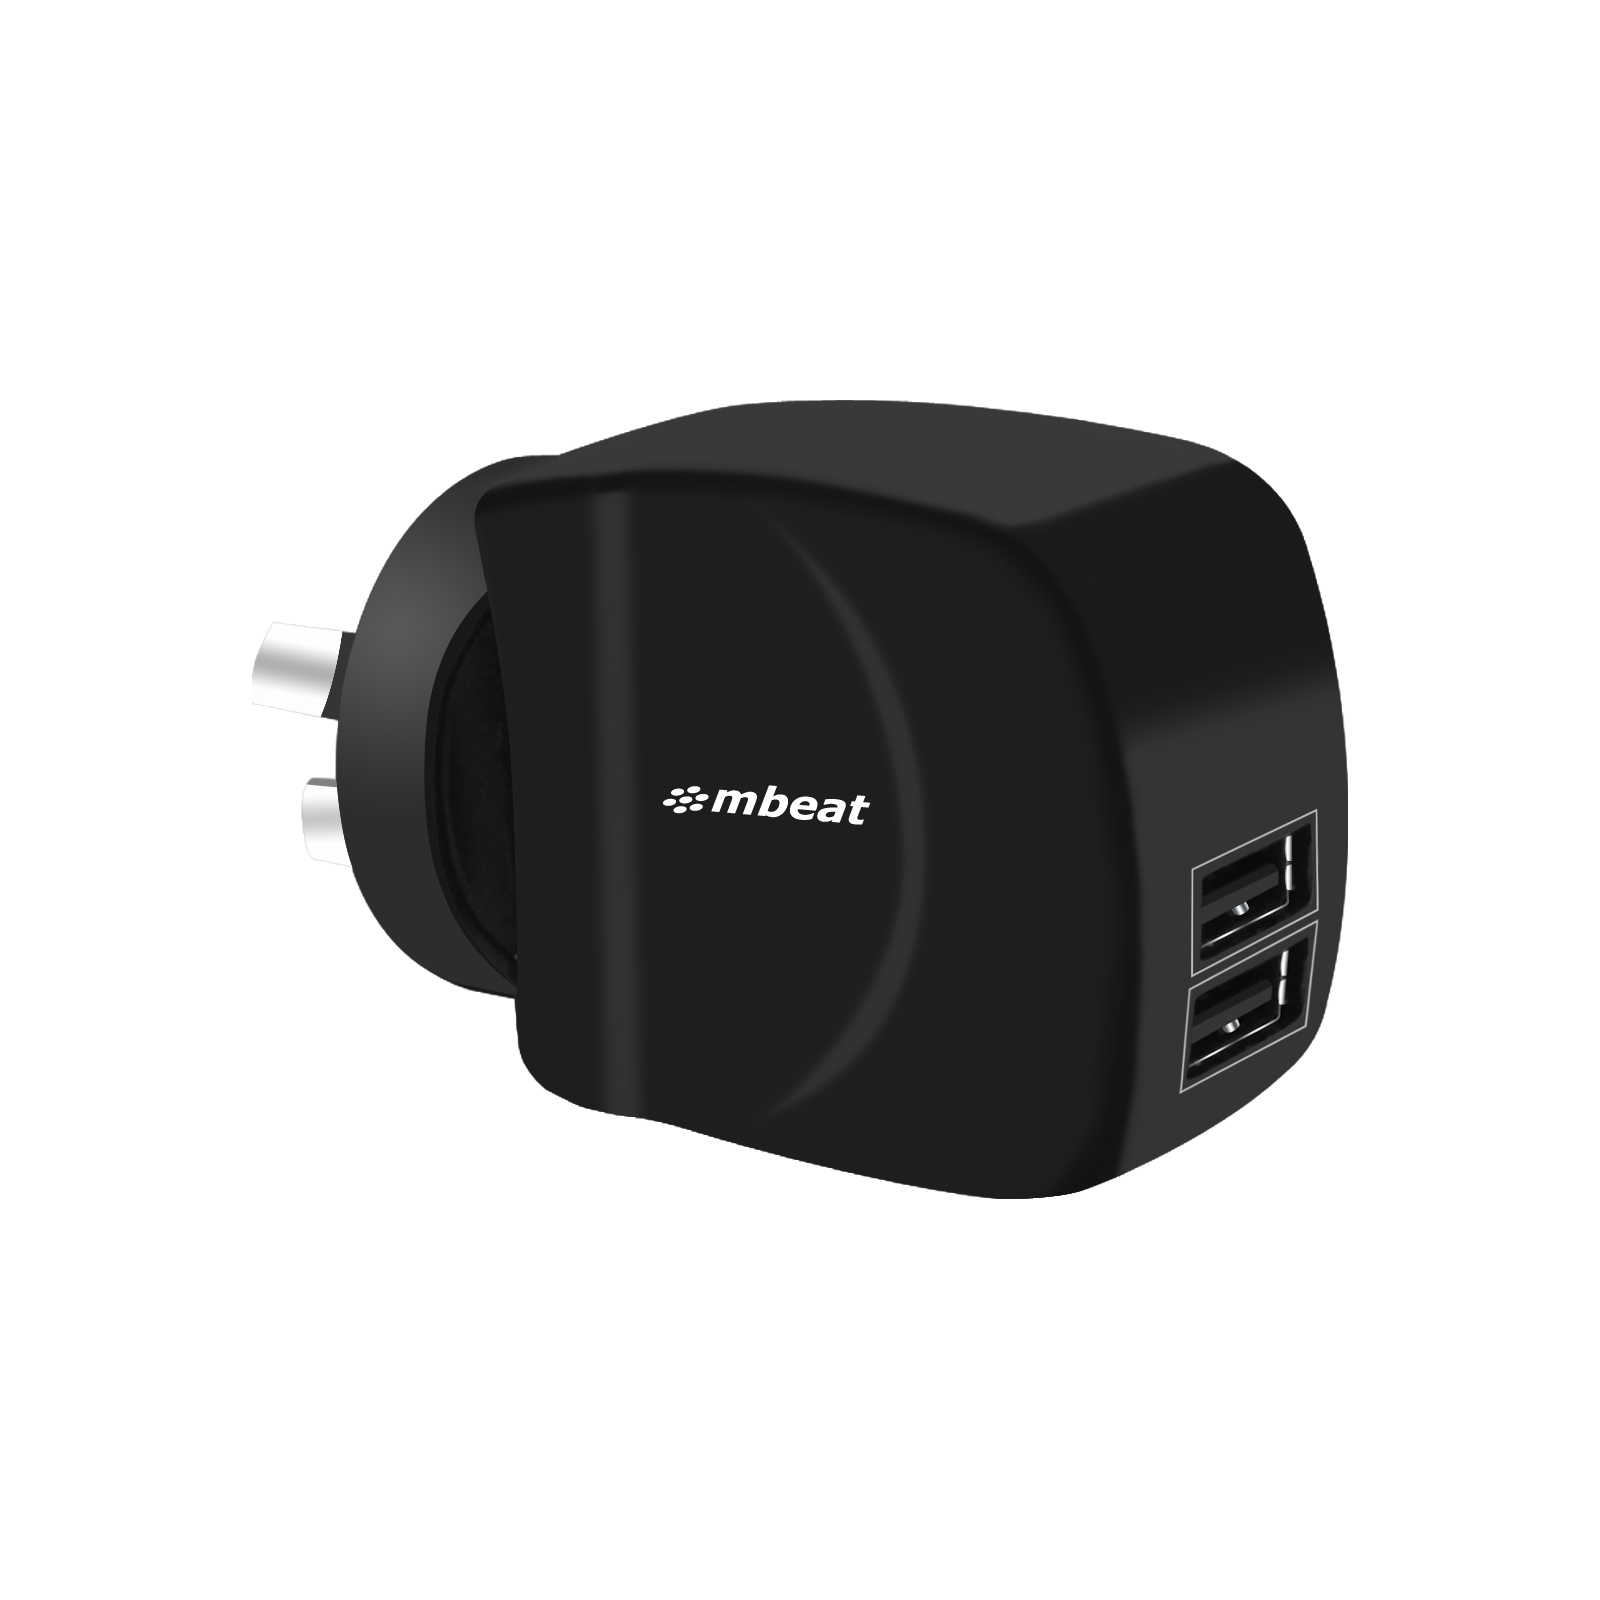 mBeat Gorilla Power Duo 3.4A Dual USB Ports Smart Charger